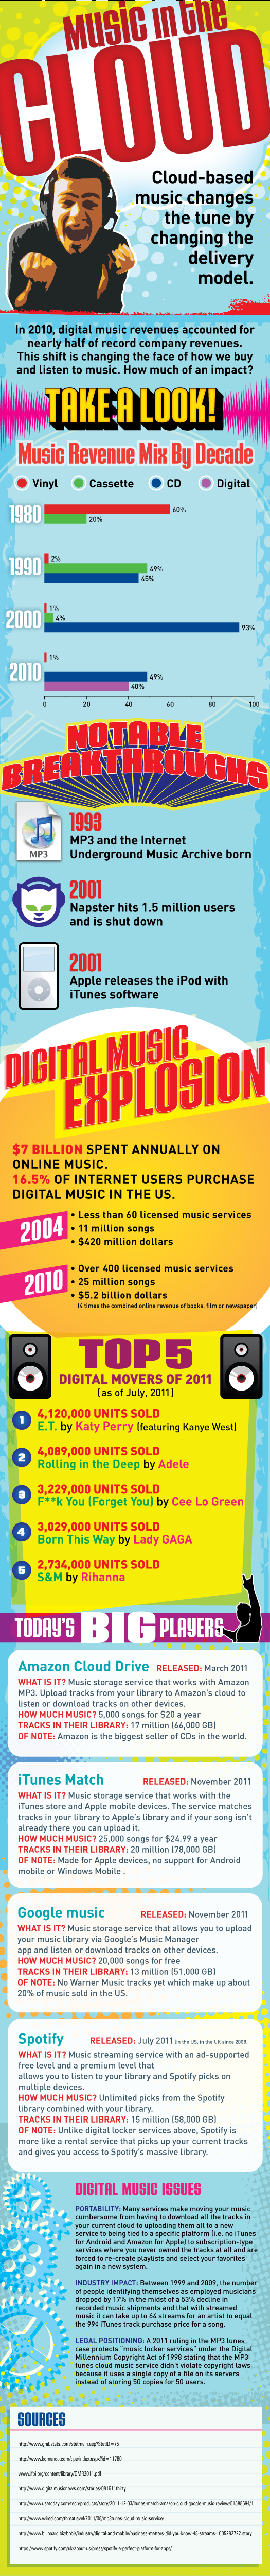 Evolution of Music in the Cloud